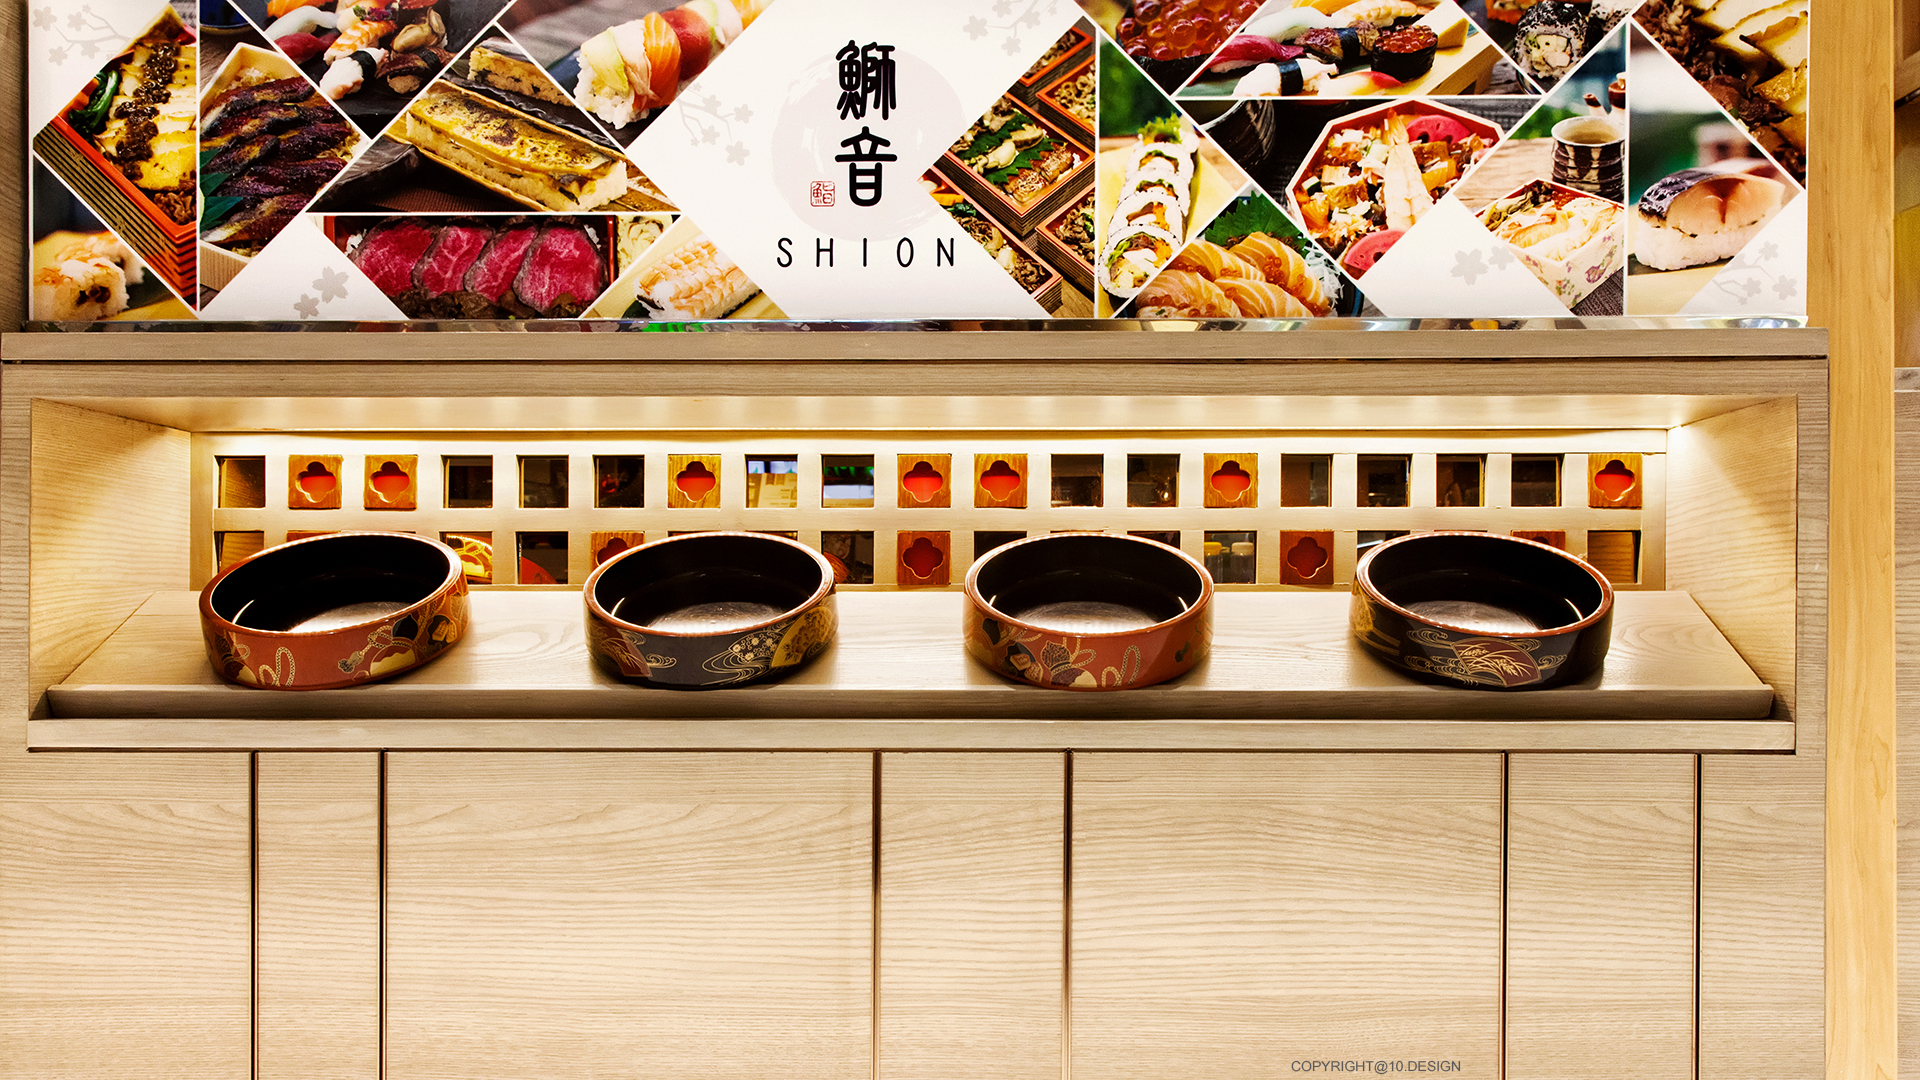 10 design shion sushi bar japanese booth takeaway interior emquartier bangkok restaurant 04